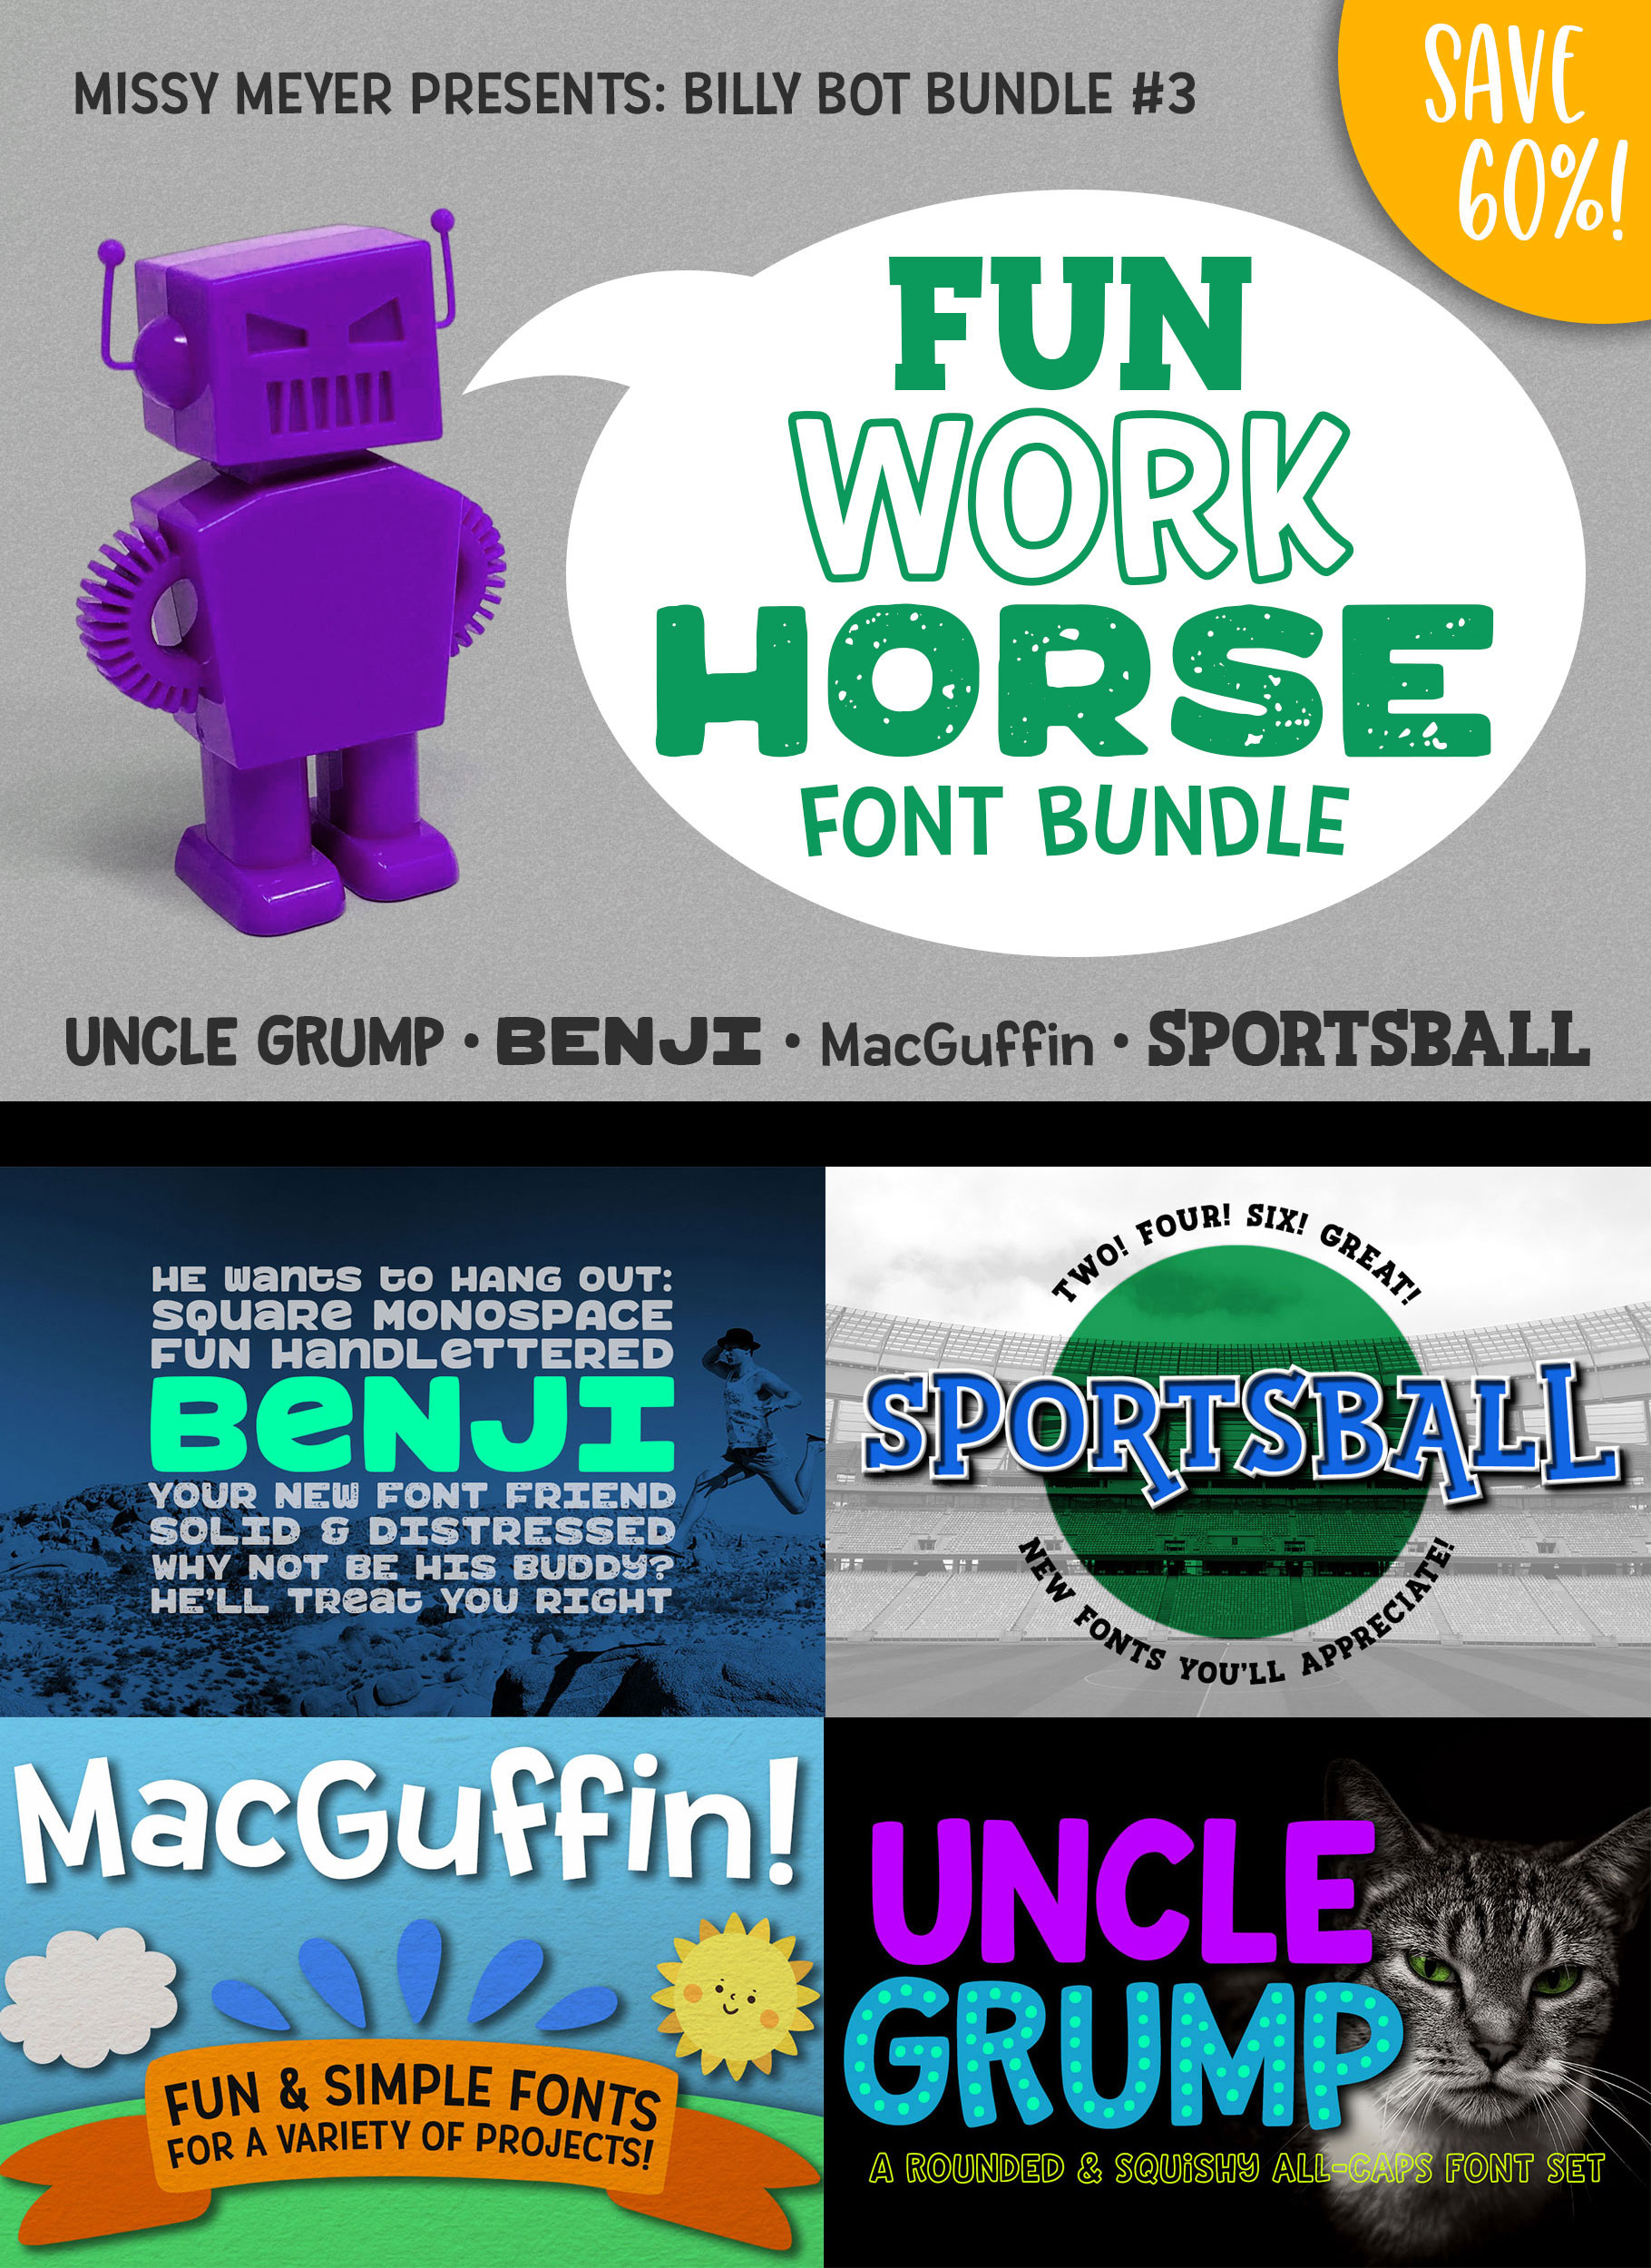 Billy Bot Bundle 3 - The Fun Workhorse Font Bundle! example image 7